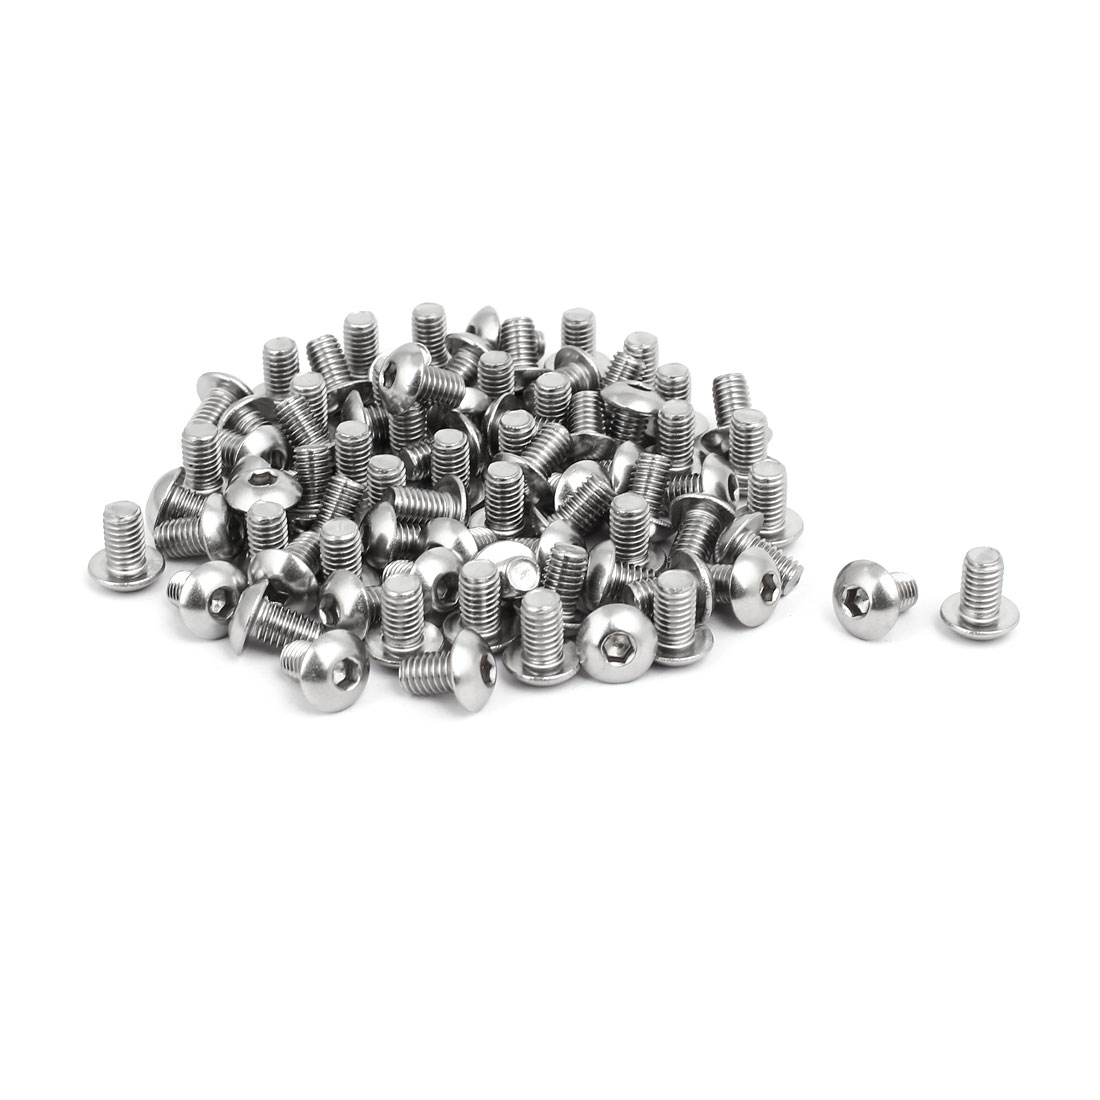 M5x8mm 304 Stainless Steel Button Head Hex Socket Cap Screws Bolts 80pcs - image 3 of 3